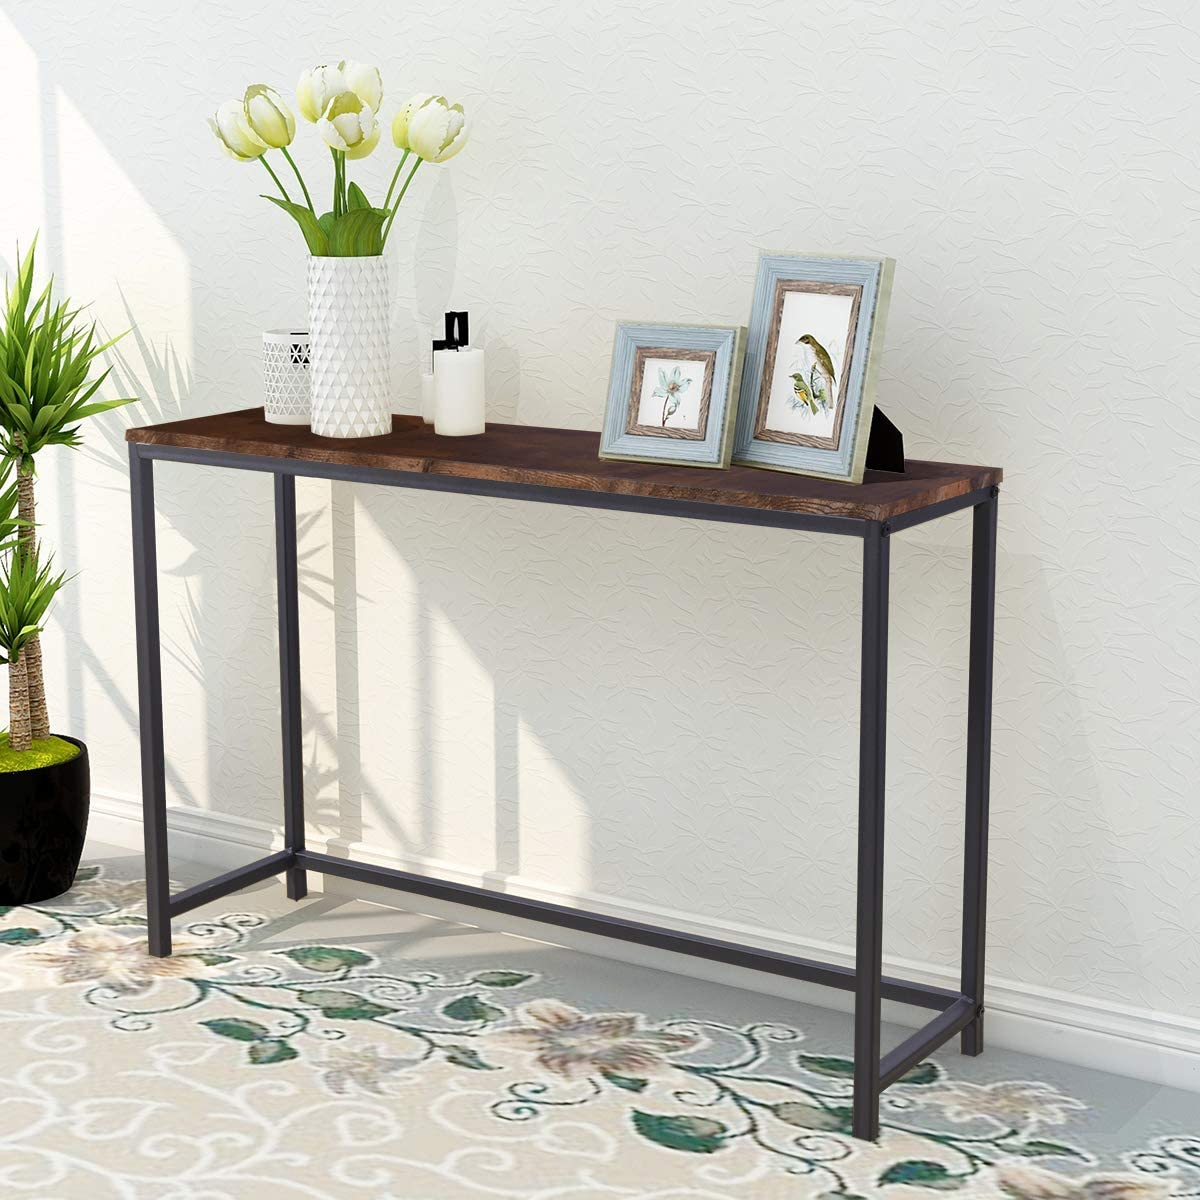 Console Sofa Tables End Table Computer Desk Coffee Snack Console Tables for Living Room Or Corridor Hallway Brown Color Wood